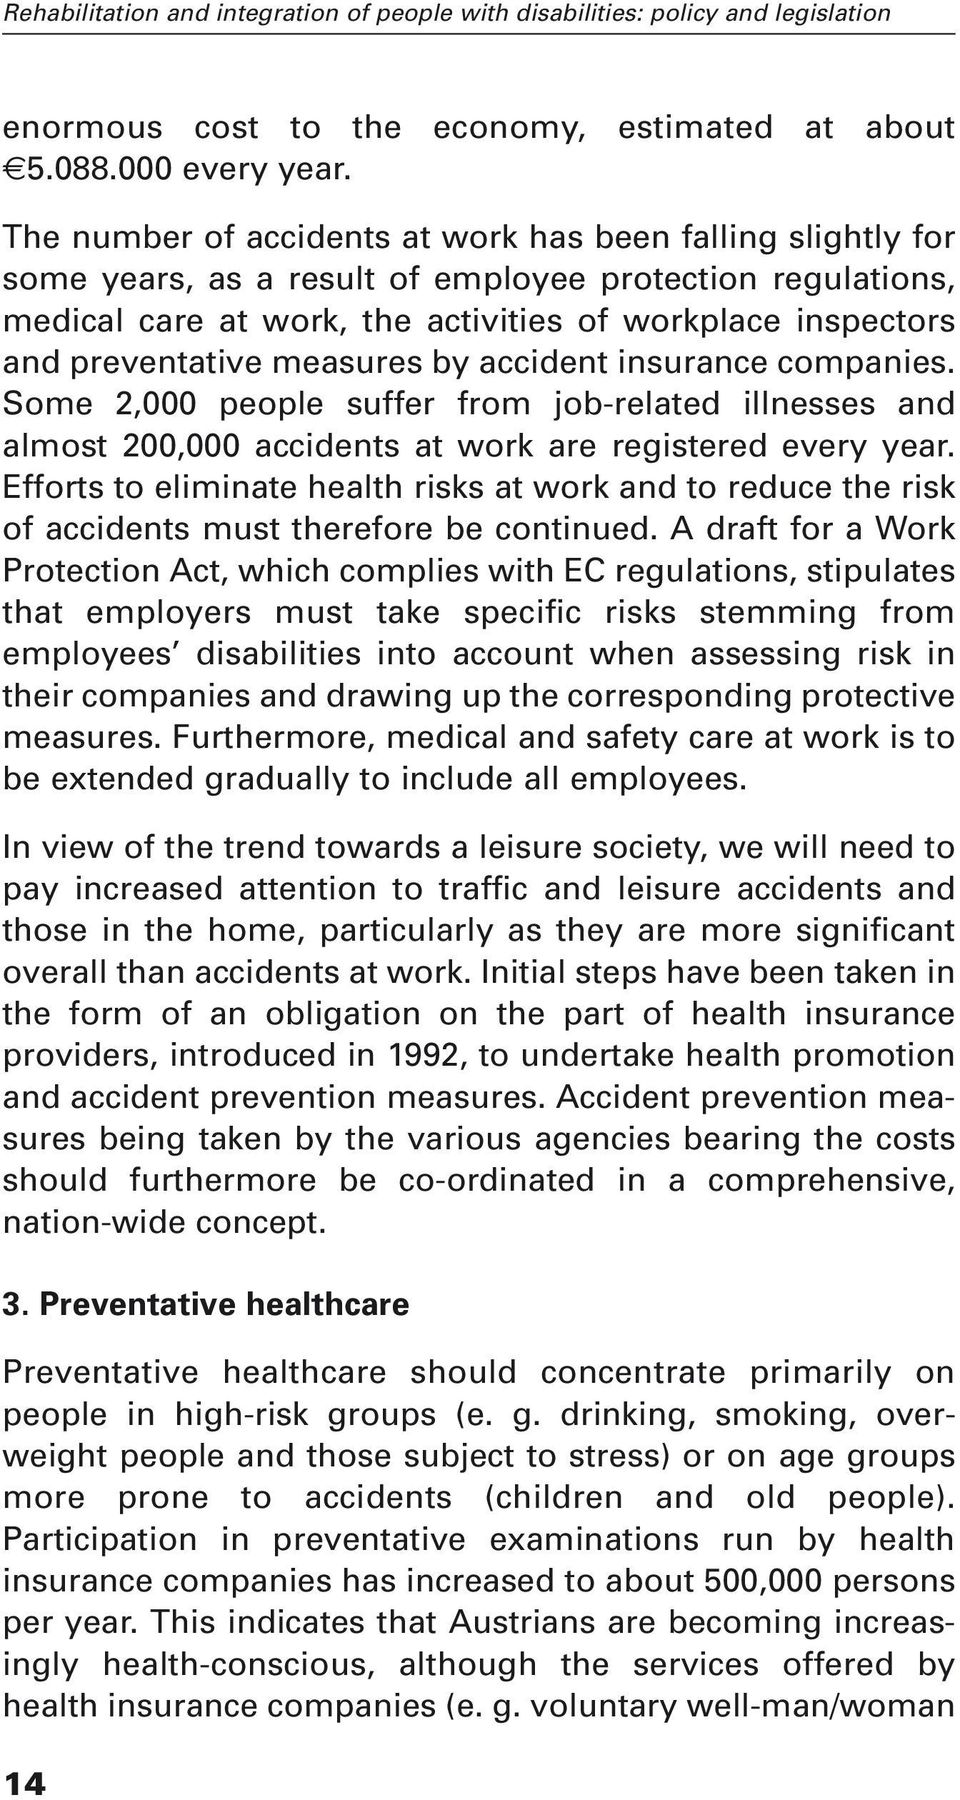 measures by accident insurance companies. Some 2,000 people suffer from job-related illnesses and almost 200,000 accidents at work are registered every year.